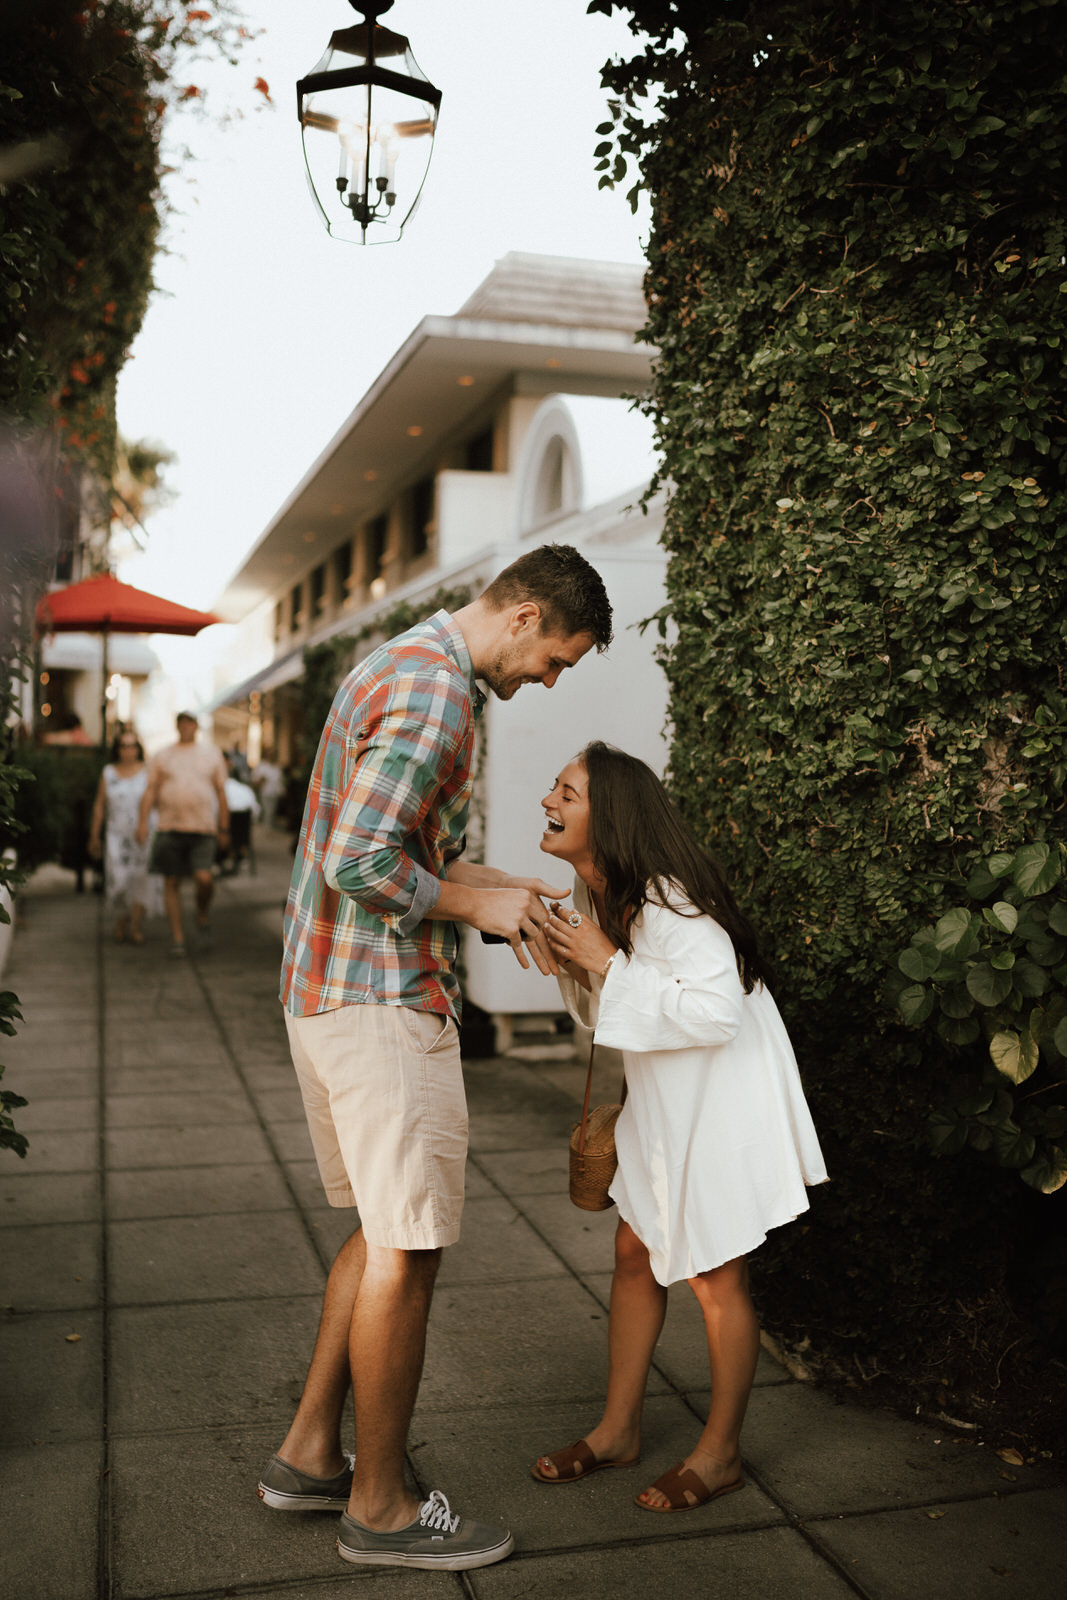 Naples 5th Ave Proposal Photos- Michelle Gonzalez Photography- Matt and Jenna-32.JPG